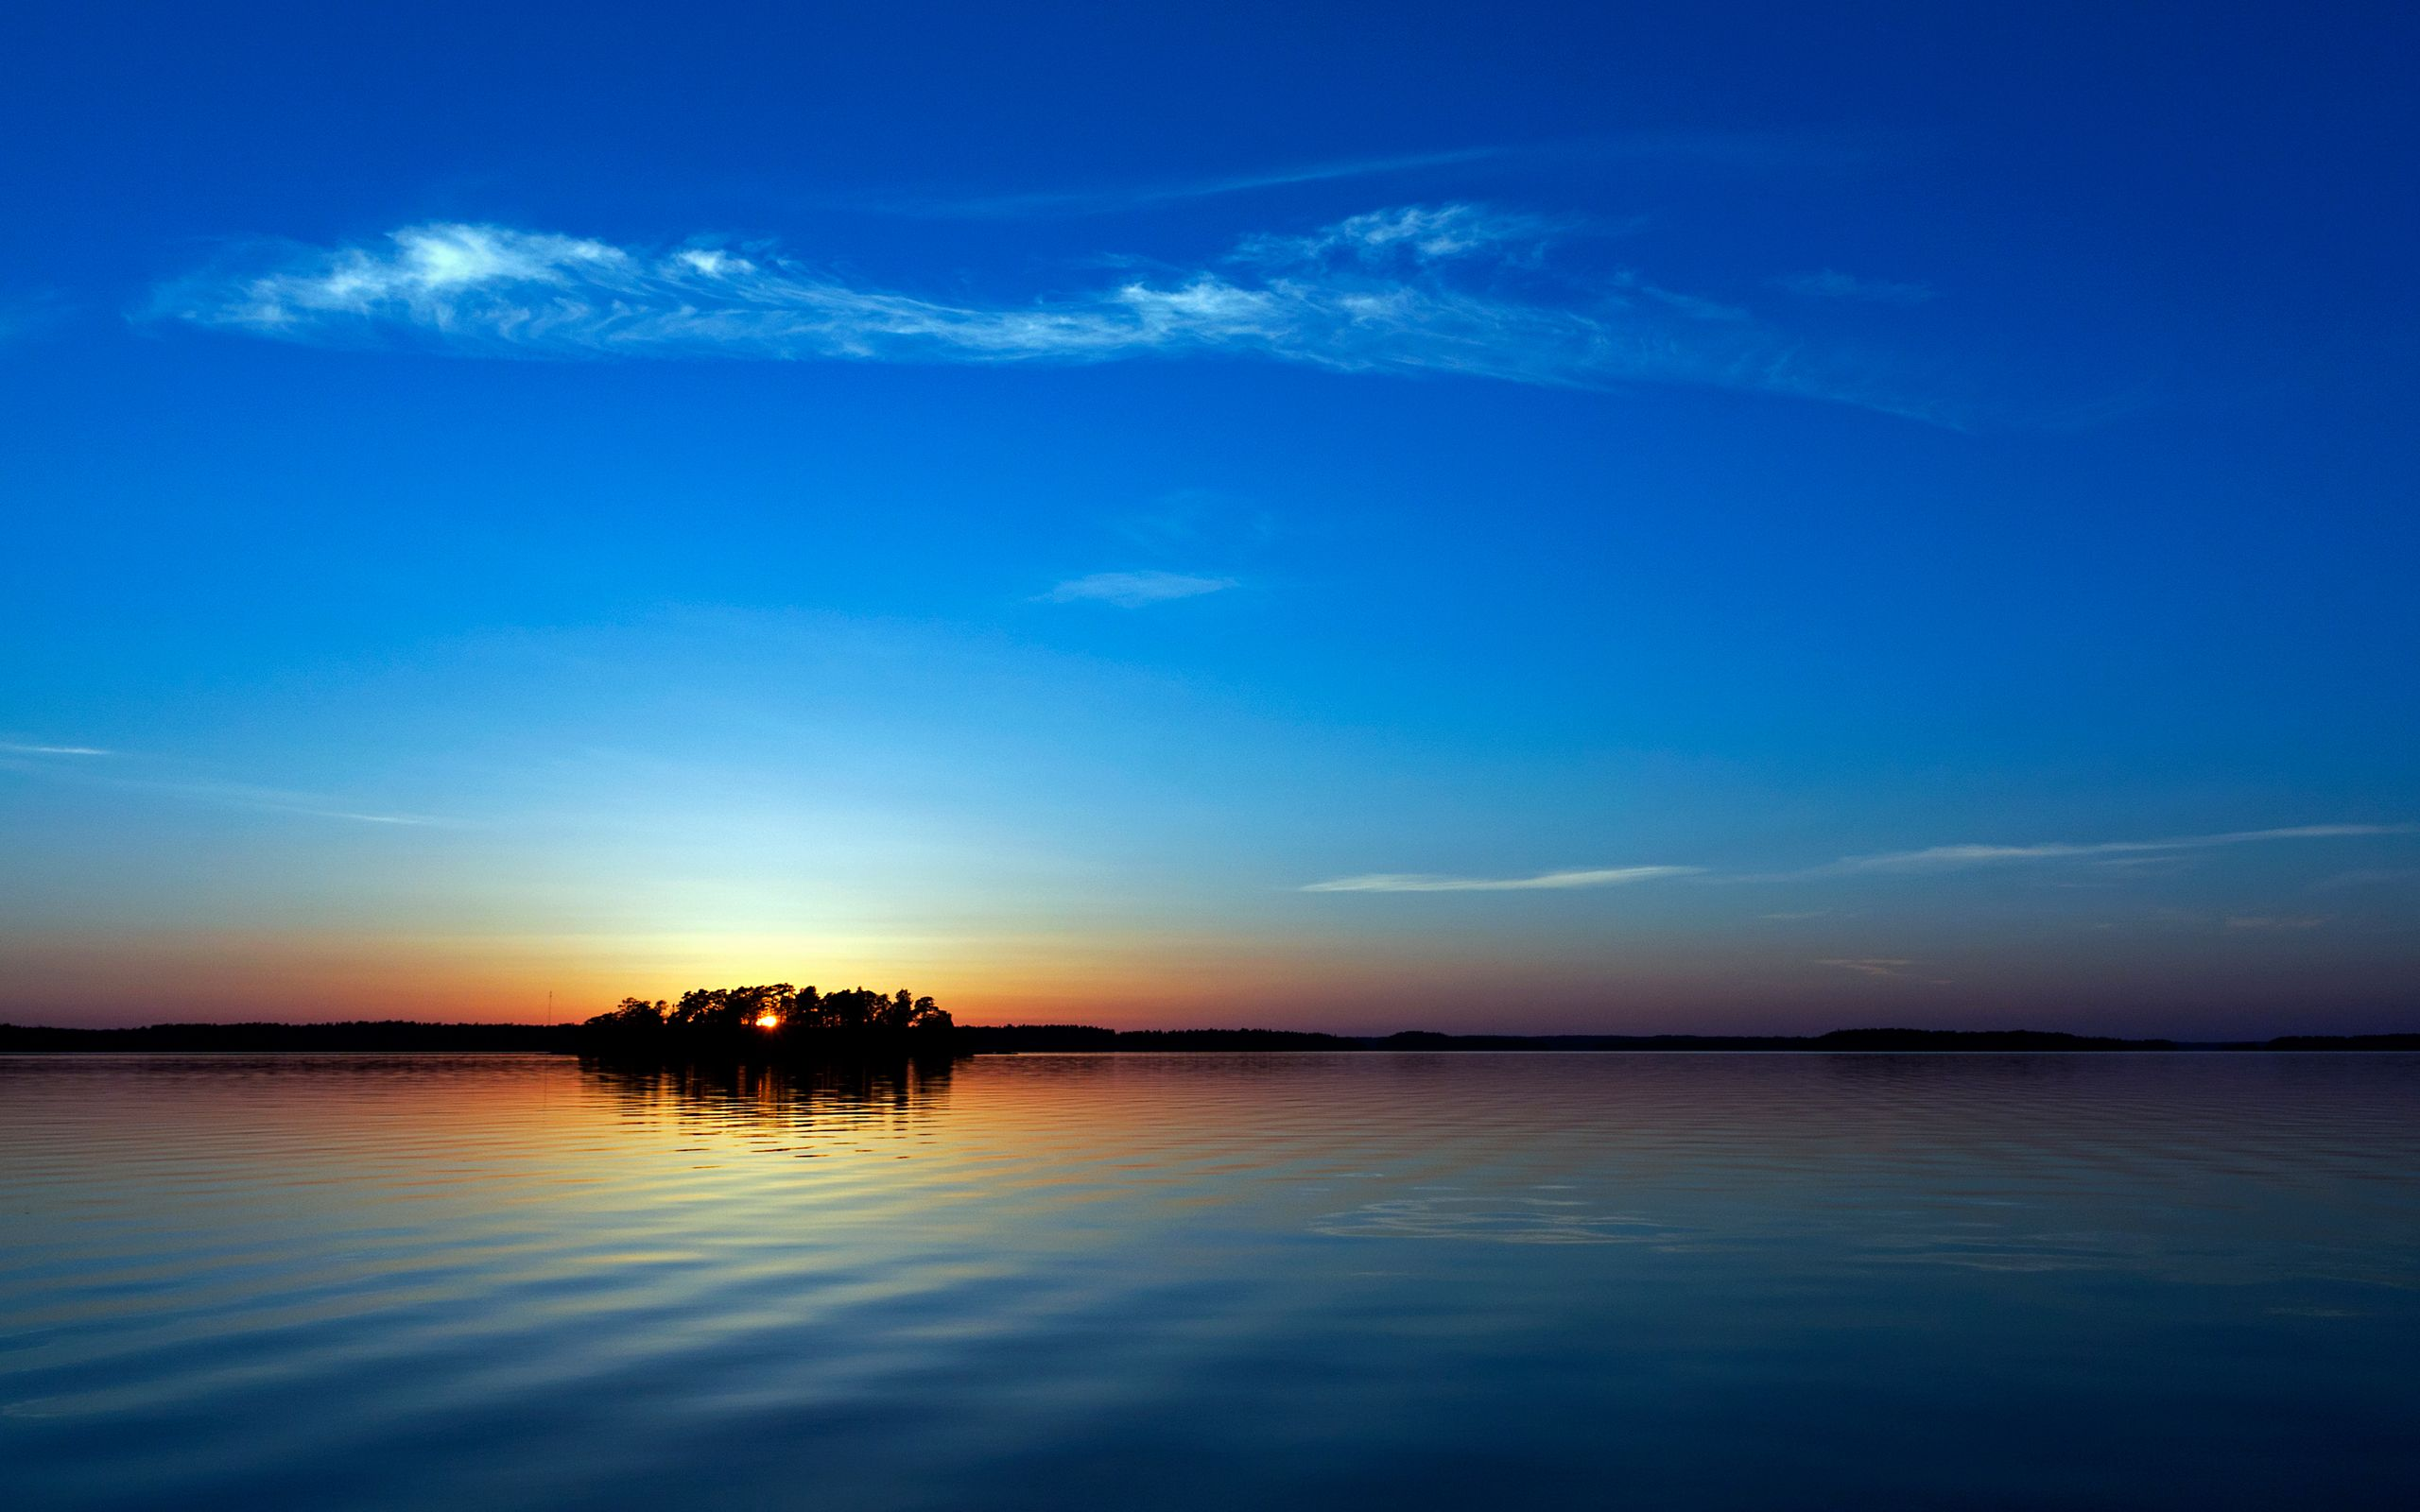 Blue sunset wallpapers hd wallpapers sunset wallpaper - Inspirational nature wallpapers ...